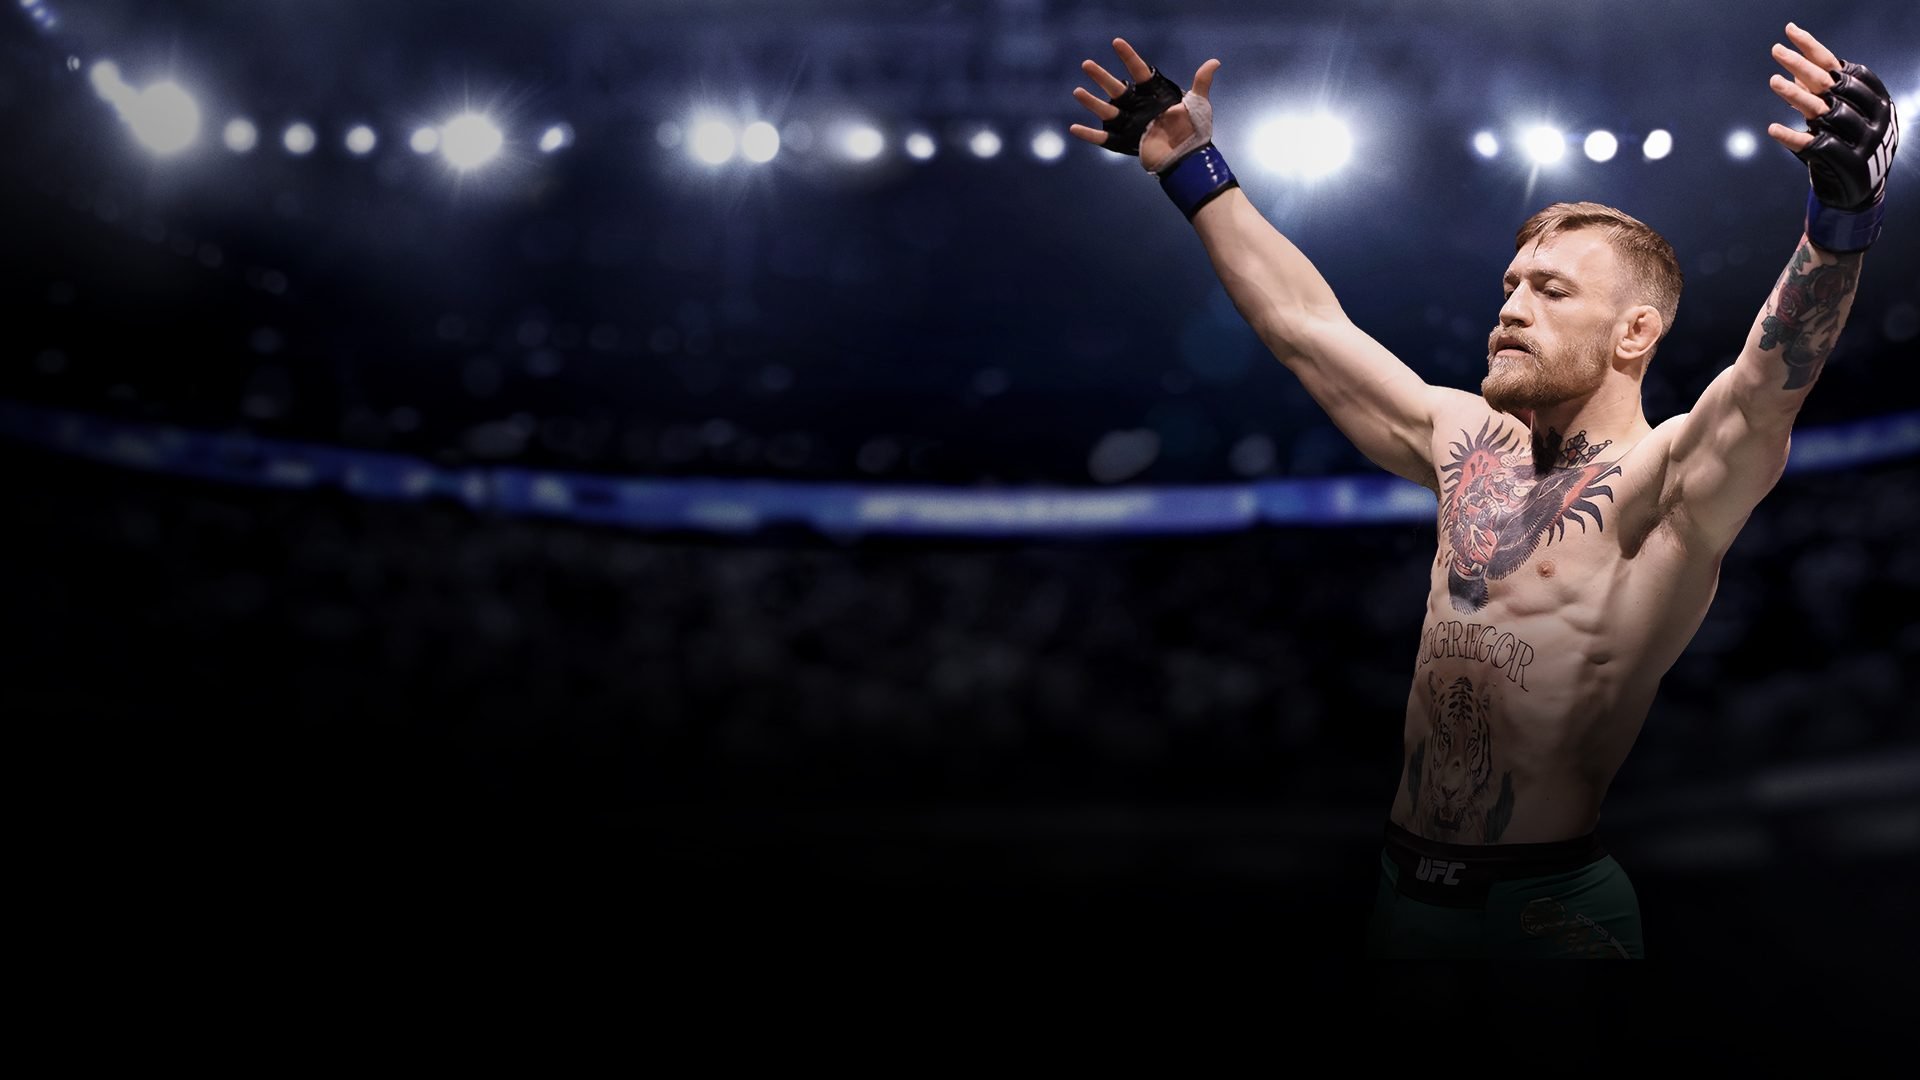 Wallpaper Pc Mobile Sport: Save EA Sports UFC 3 HD Wallpapers